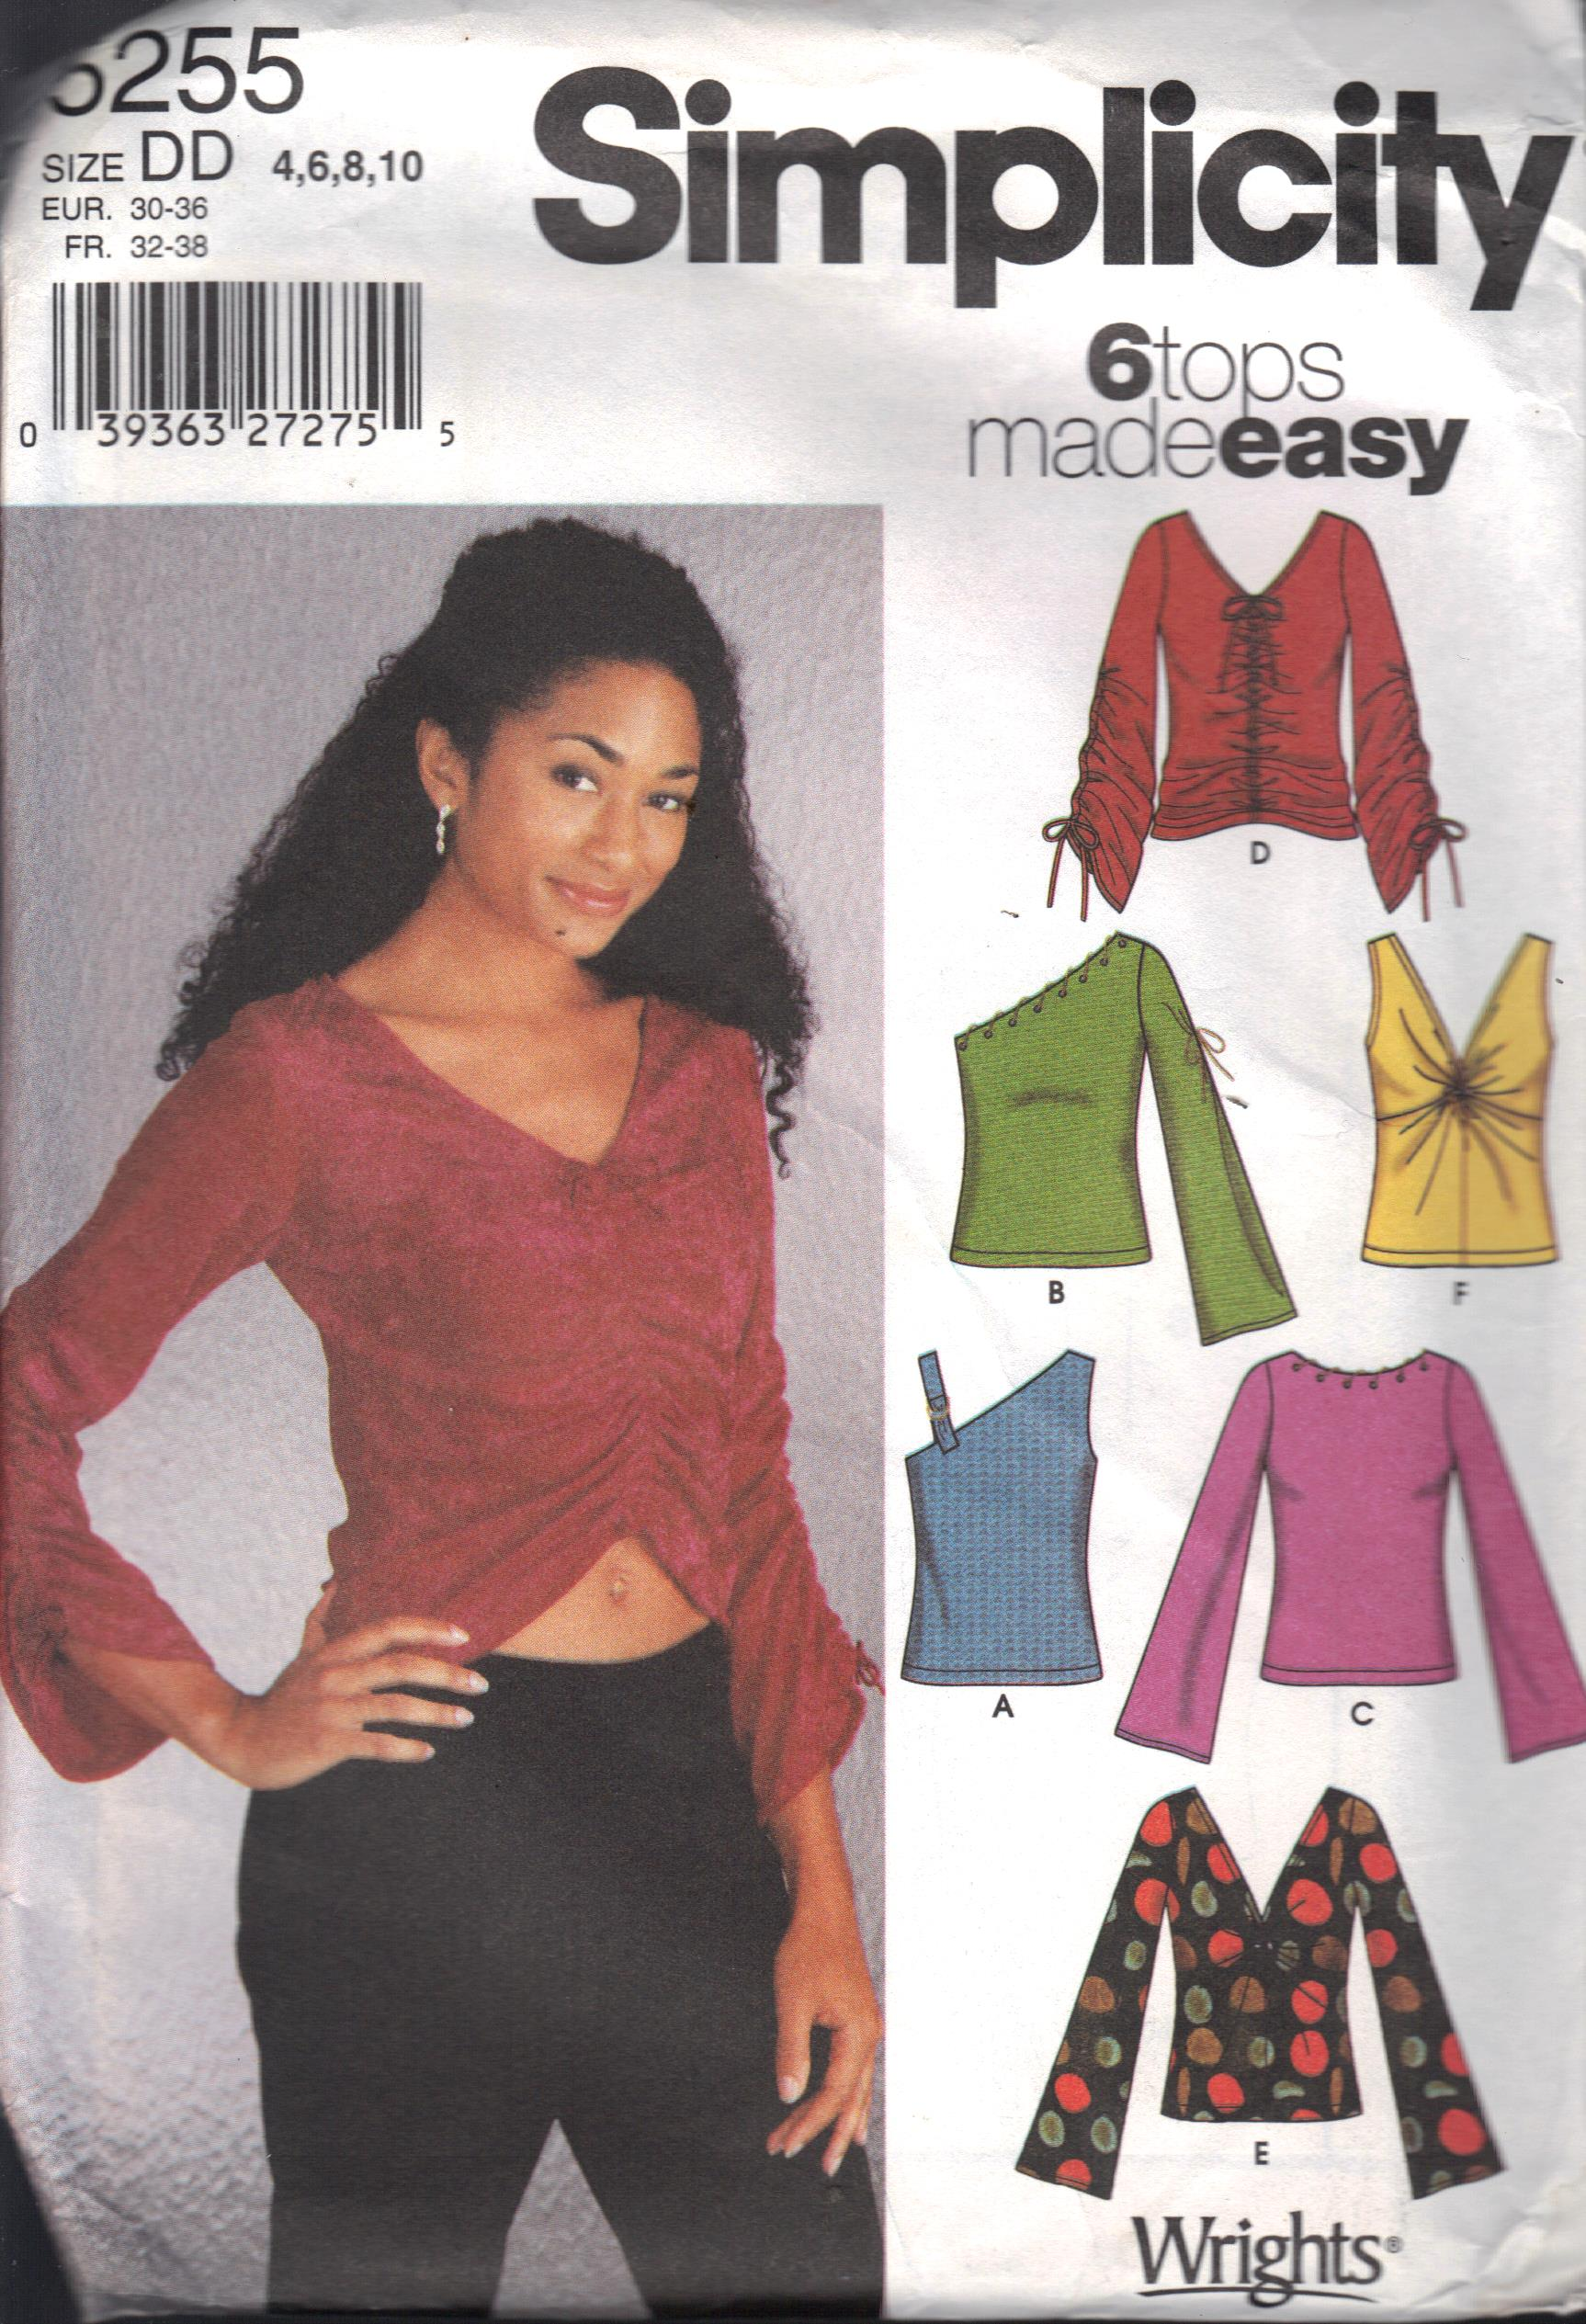 5255 Simplicity Girls Knit Top Pattern Size 4-10